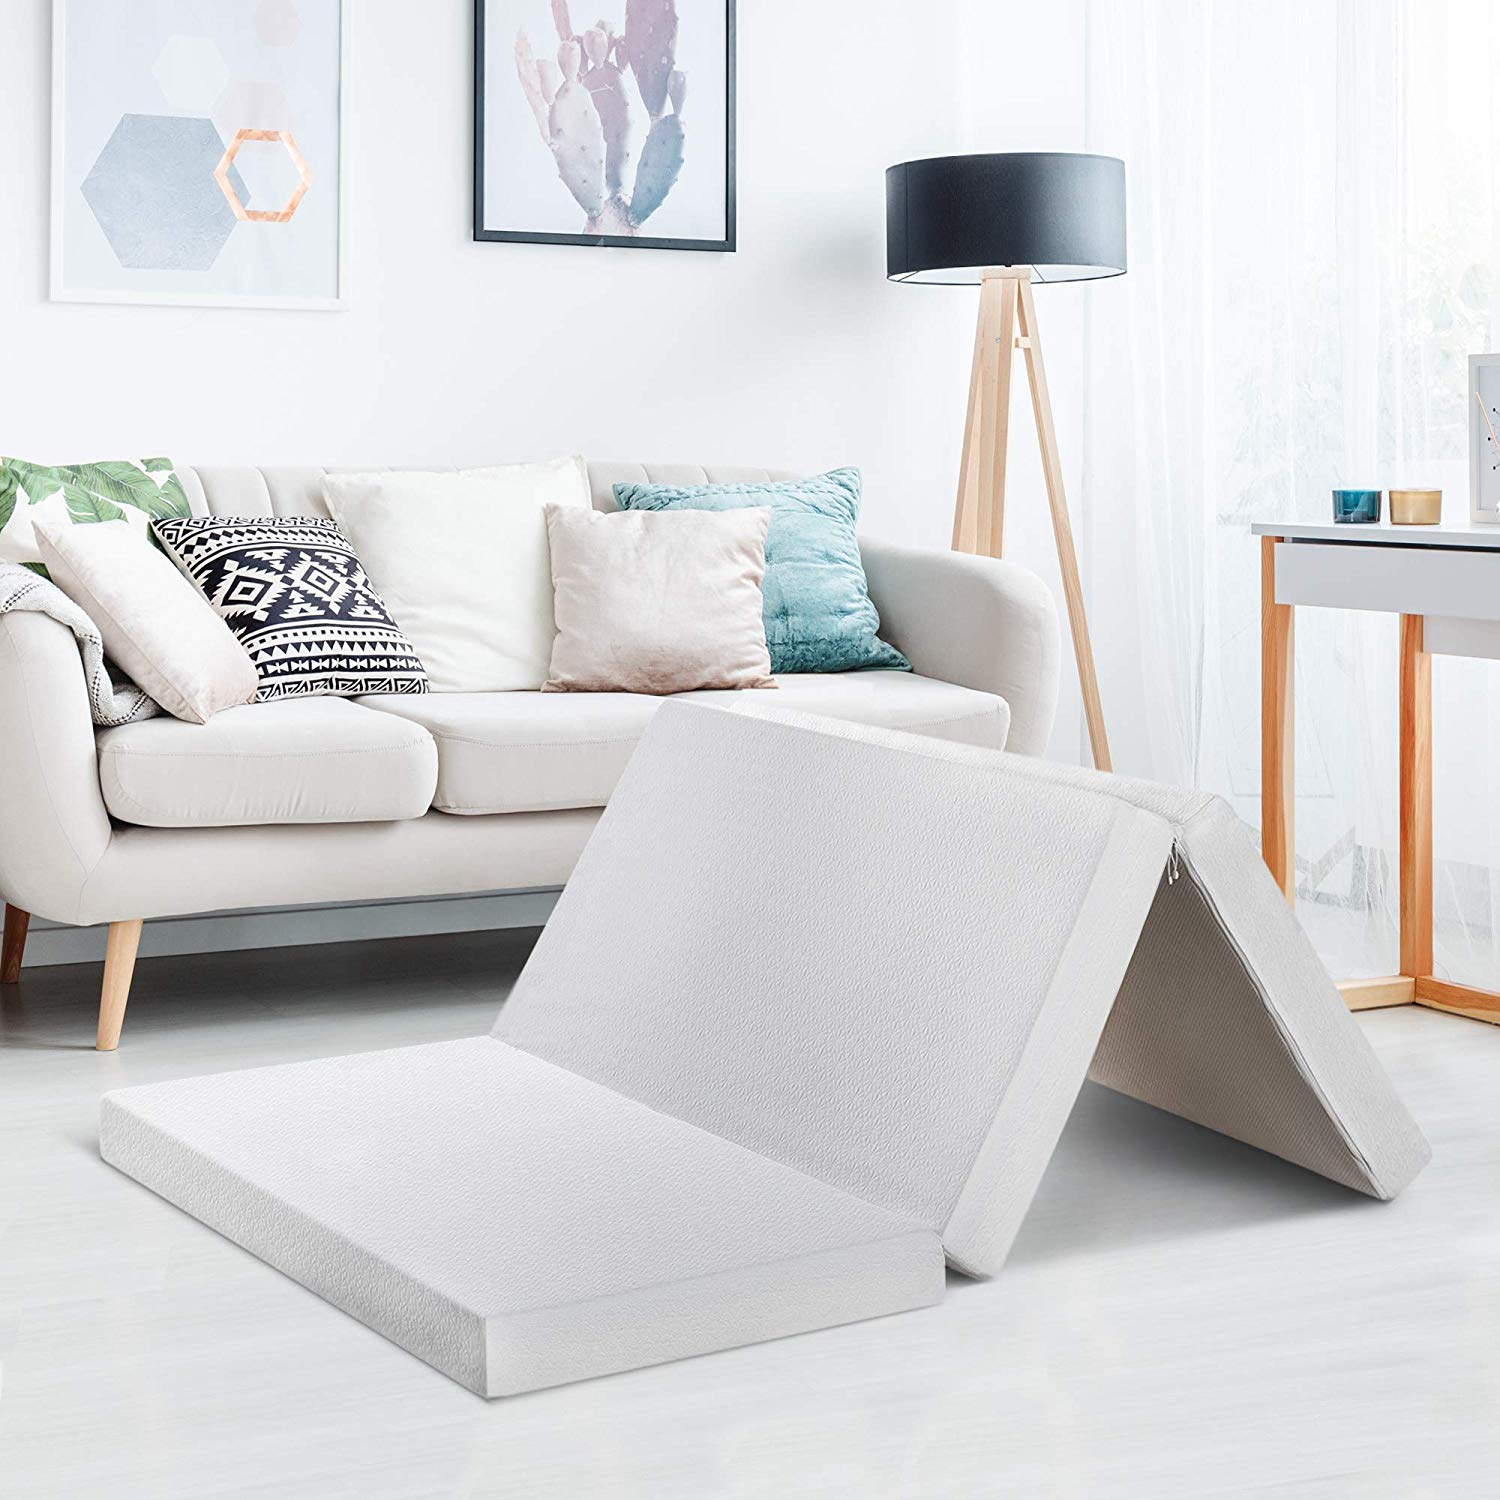 Fold Mattress Tri Fold Your Way Into 2019 We Review The Best Folding Mattresses